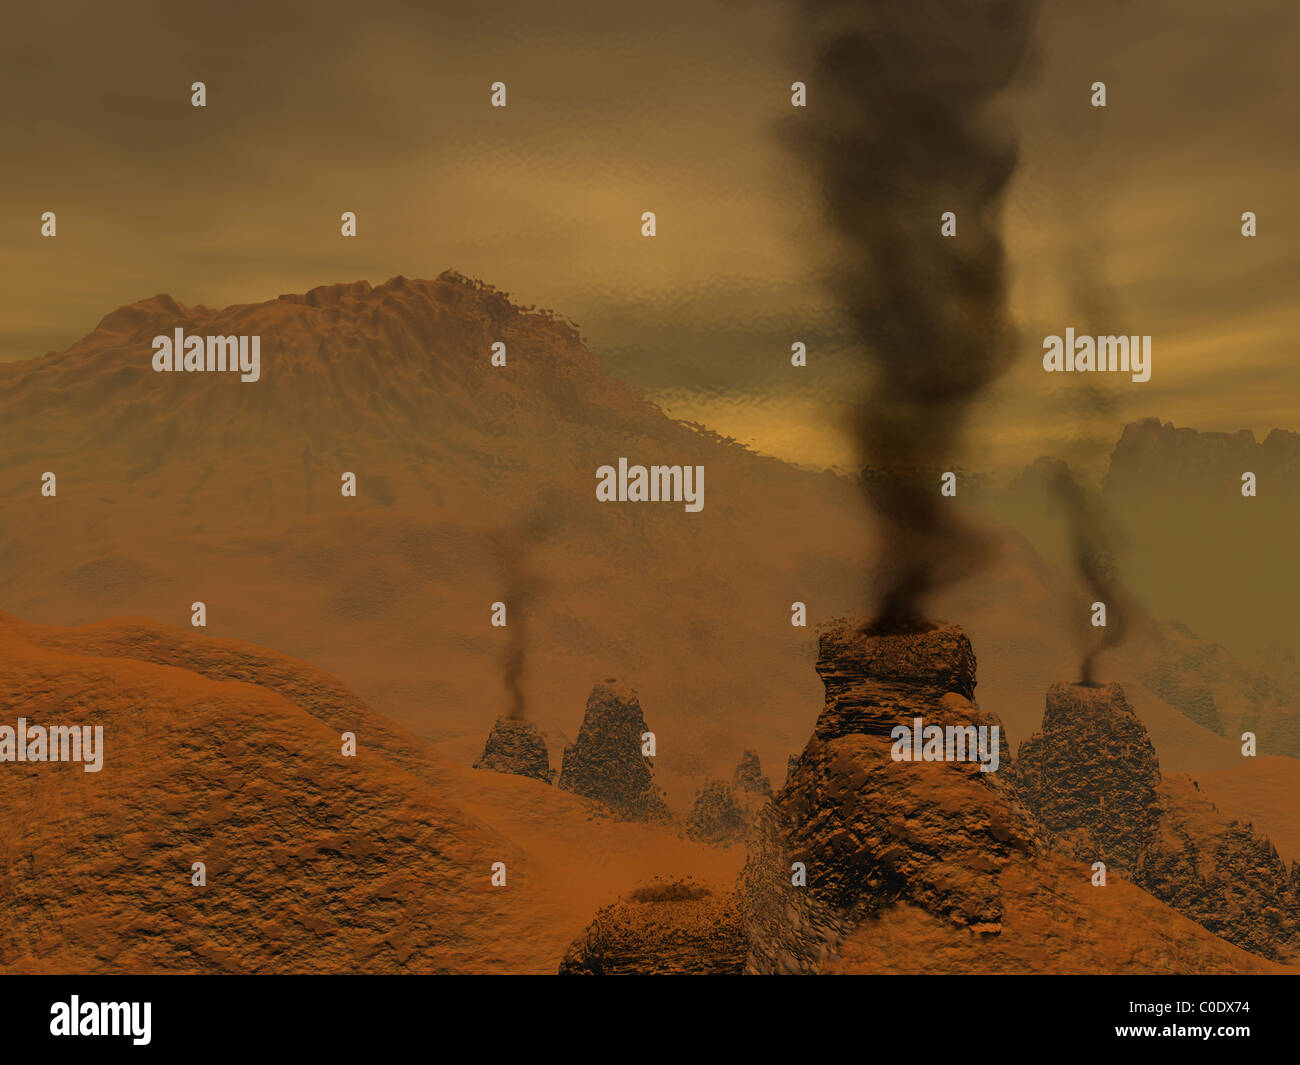 Artist's concept of volcanic activity on the surface of Venus. - Stock Image